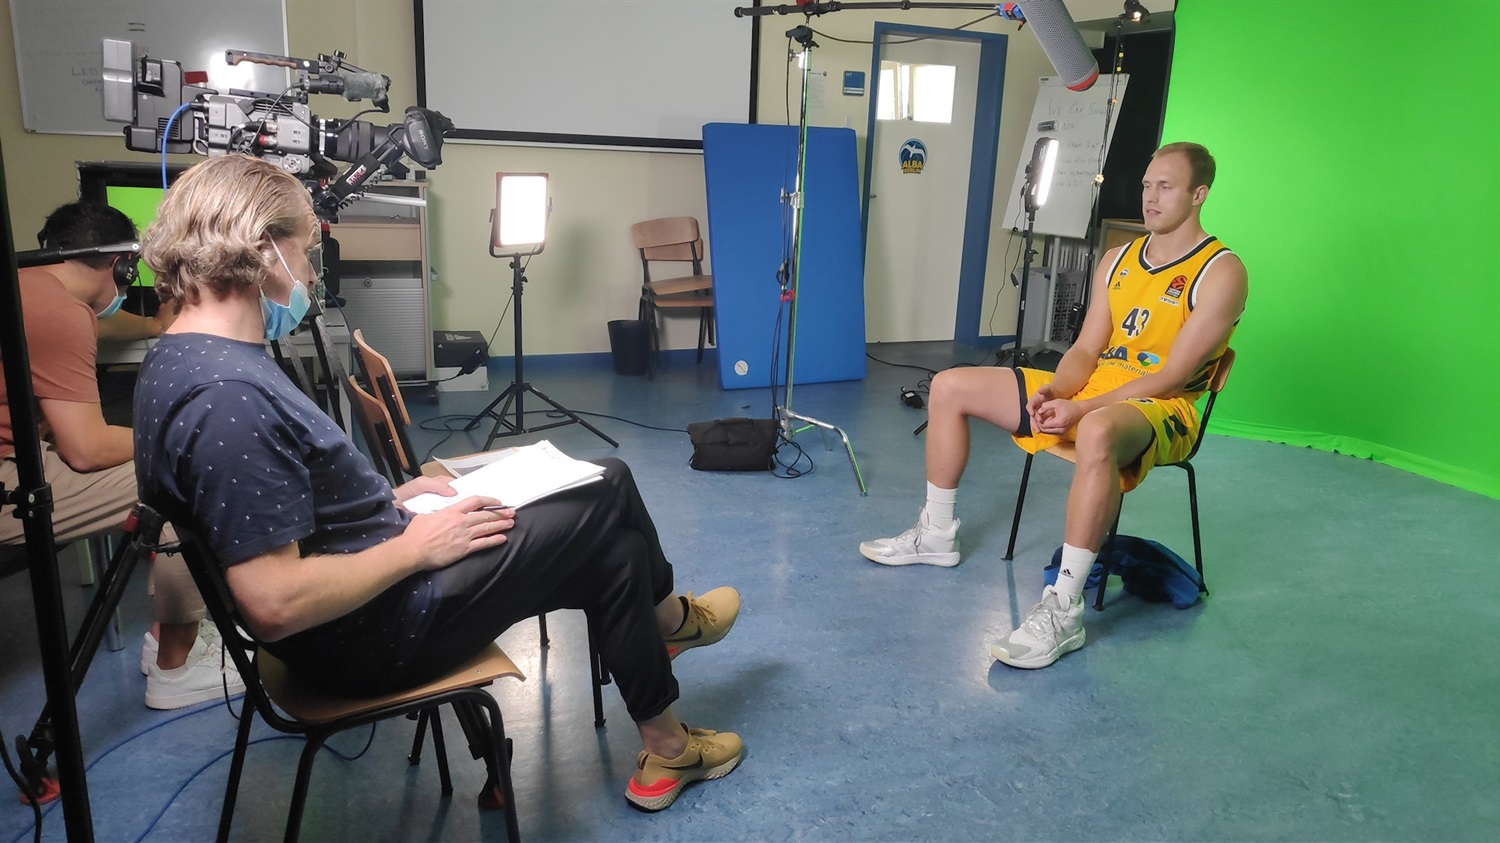 Luke Sikma - ALBA Berlin Media Day 2020 - EB20